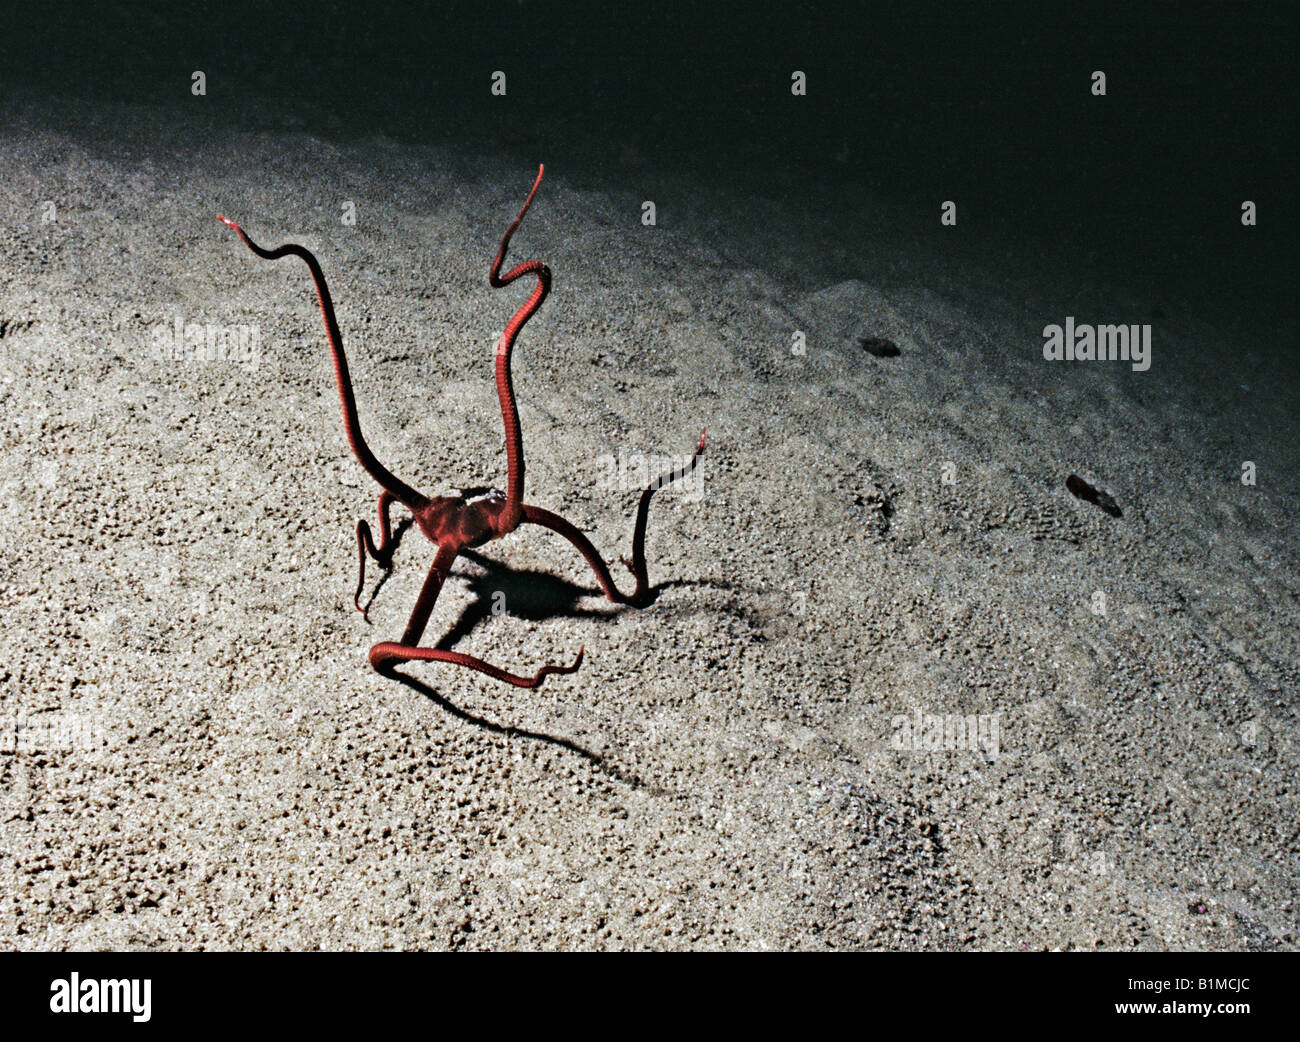 Snake Star Ophiophagus maculatus, arms raised for suspension feeding, mucus on arms catching suspended plankton - Stock Image